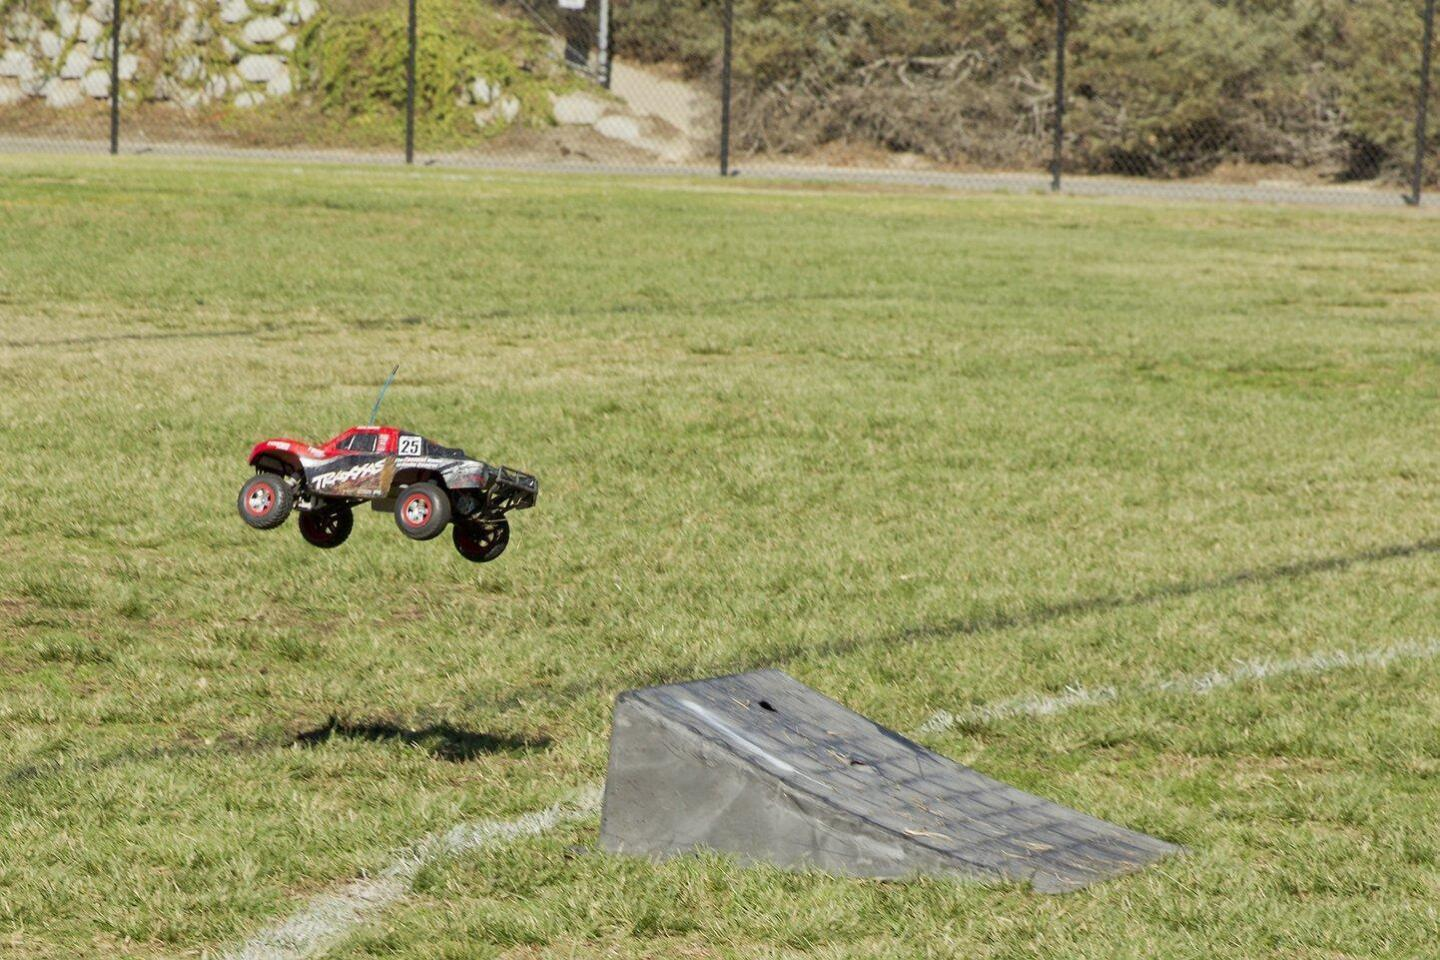 Radio-controlled cars jump off the ramp at the Drones, Donuts, and Dads event at Carmel Creek School